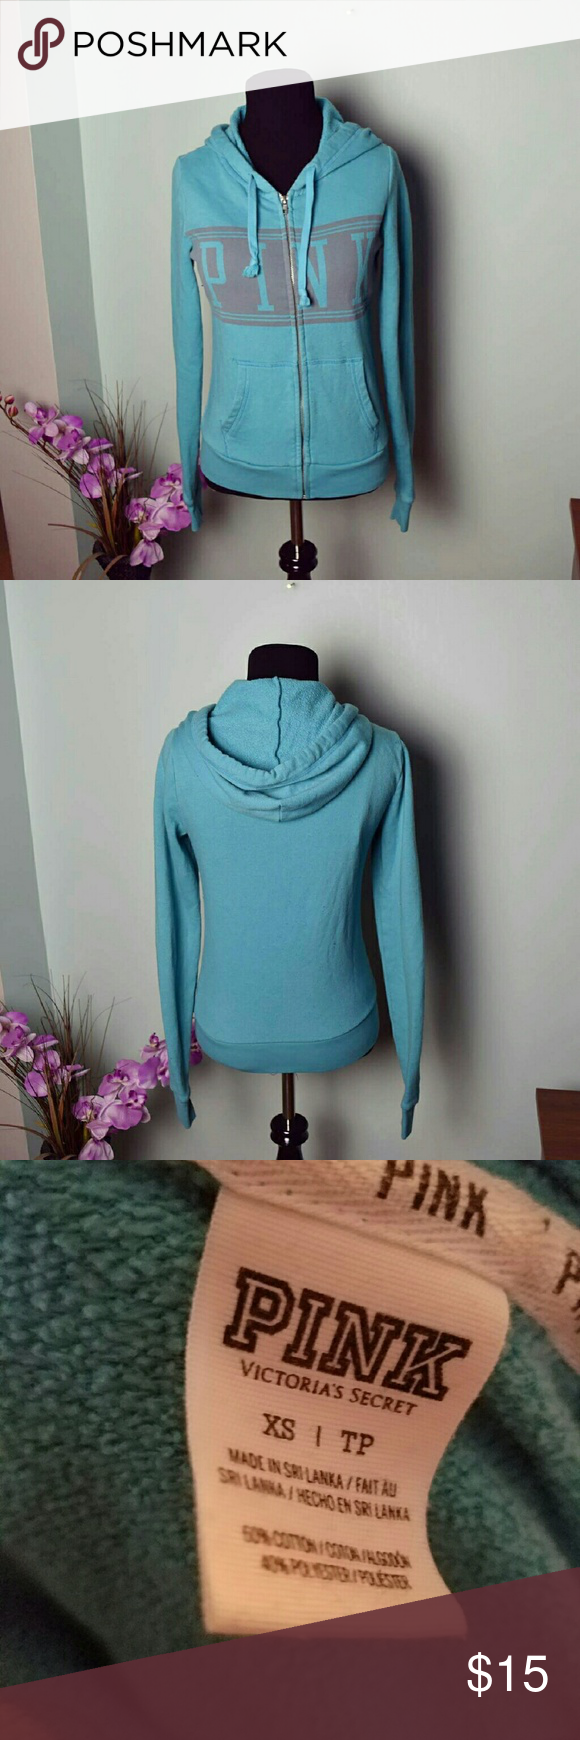 PINK Powder Blue Zip Up Sweater PRICE IS FIRM